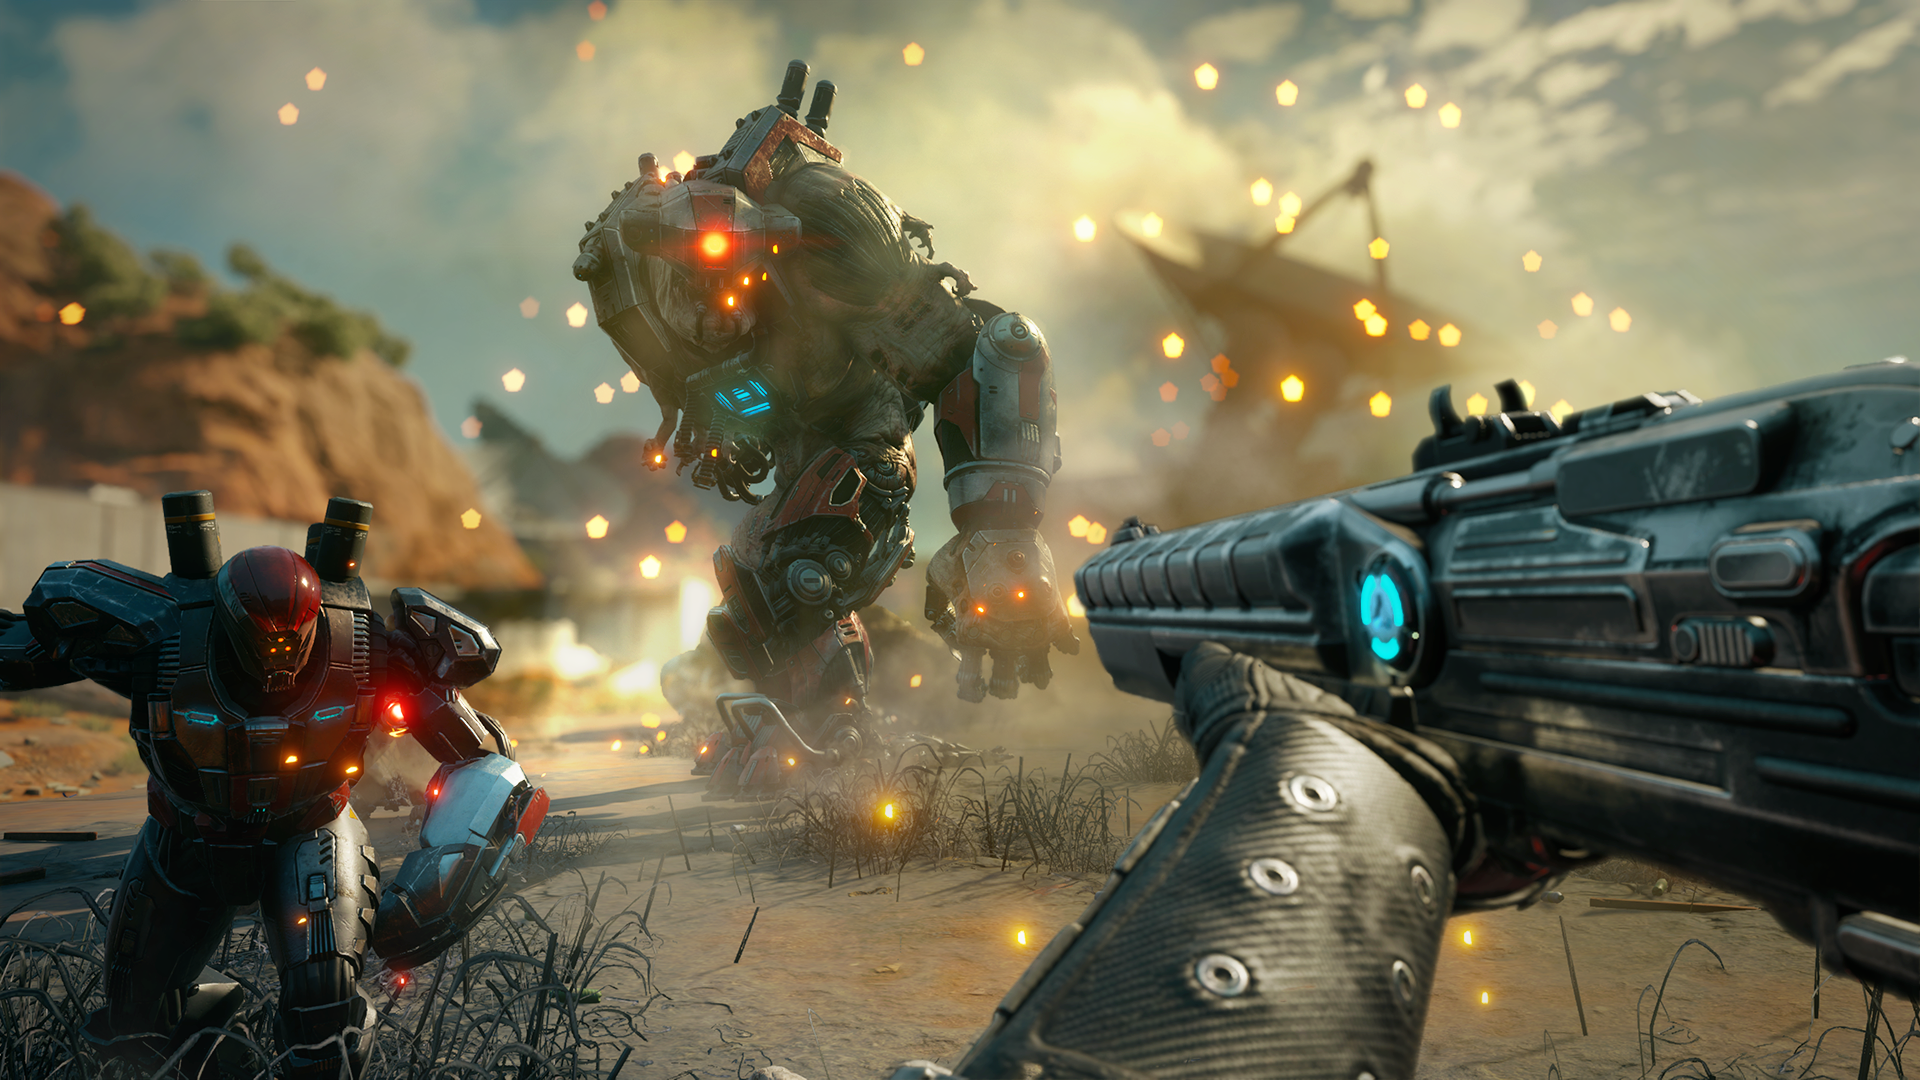 Rage 2 is powered by the Apex Engine – and looks stunning